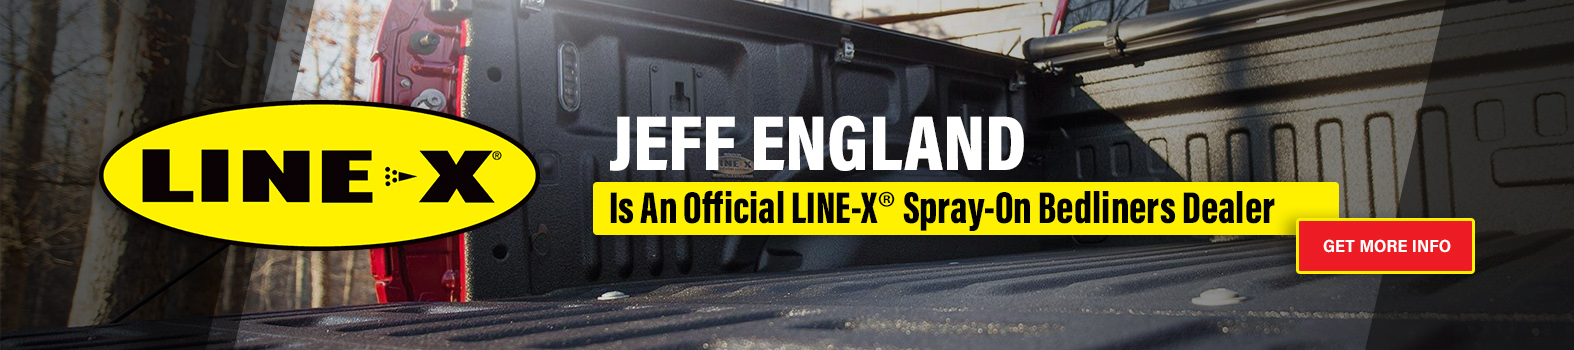 Jeff England is an Official Line-X Spray-On Bedliners Dealer - Click to Get More Info.